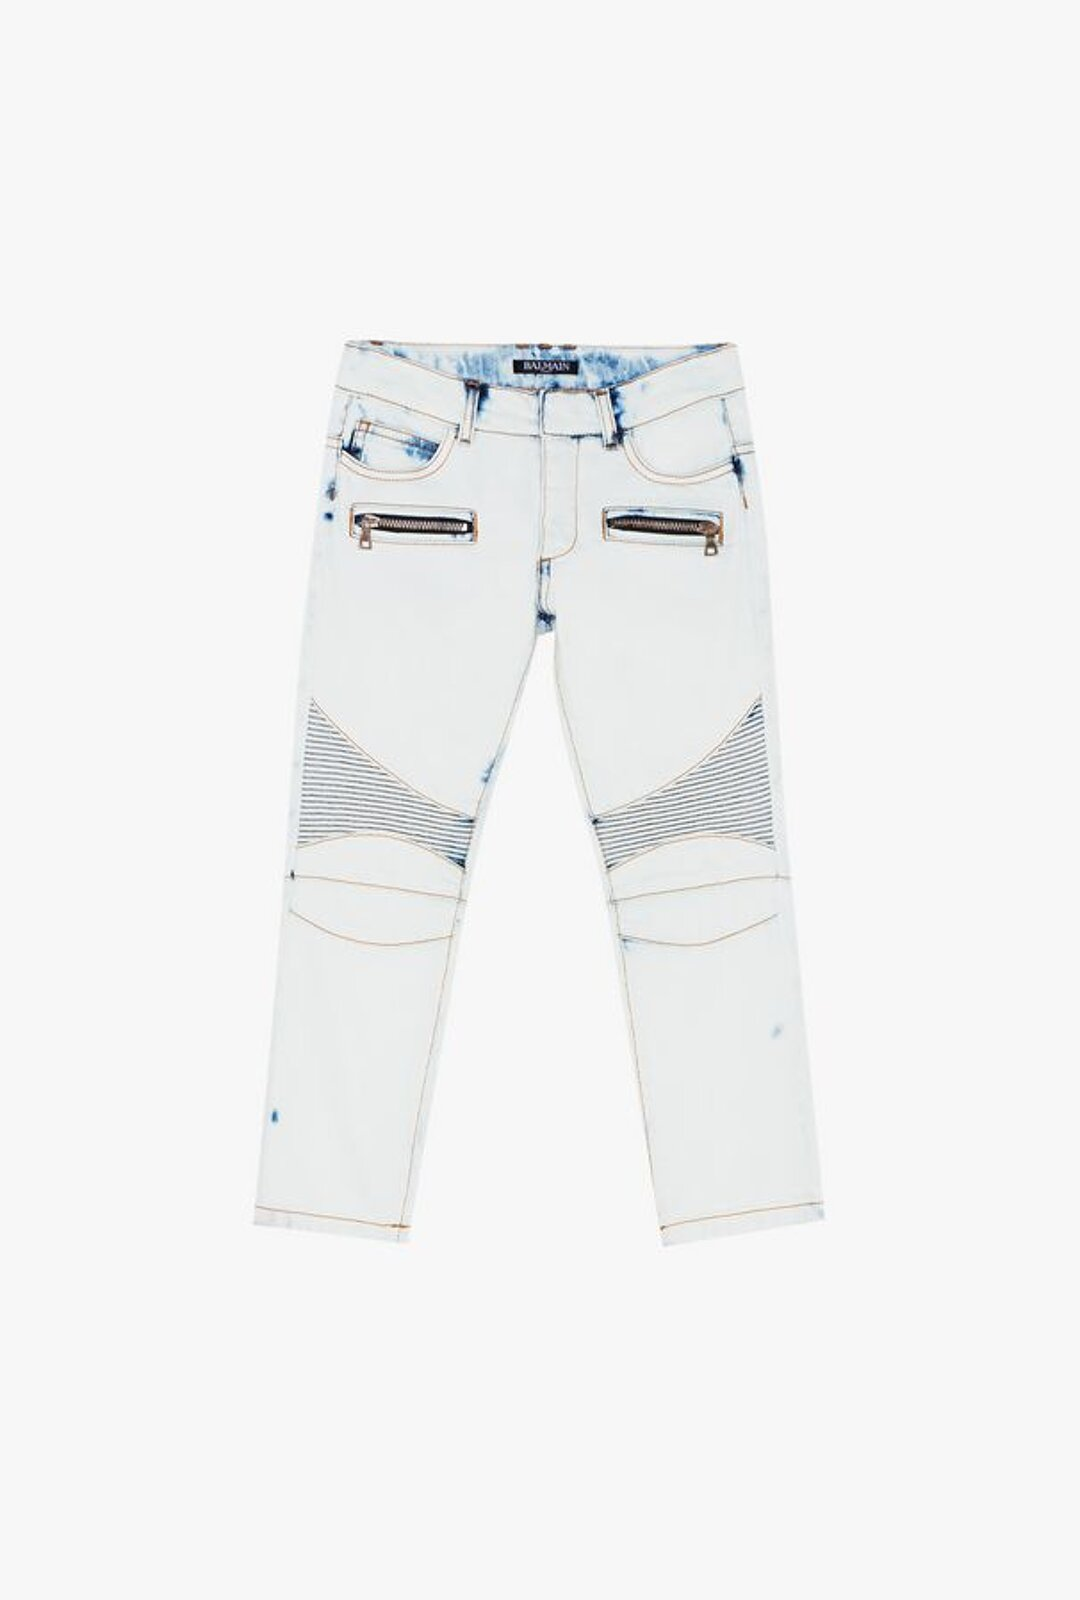 Blue Cotton Jeans With Faded Effect - Balmain Junior